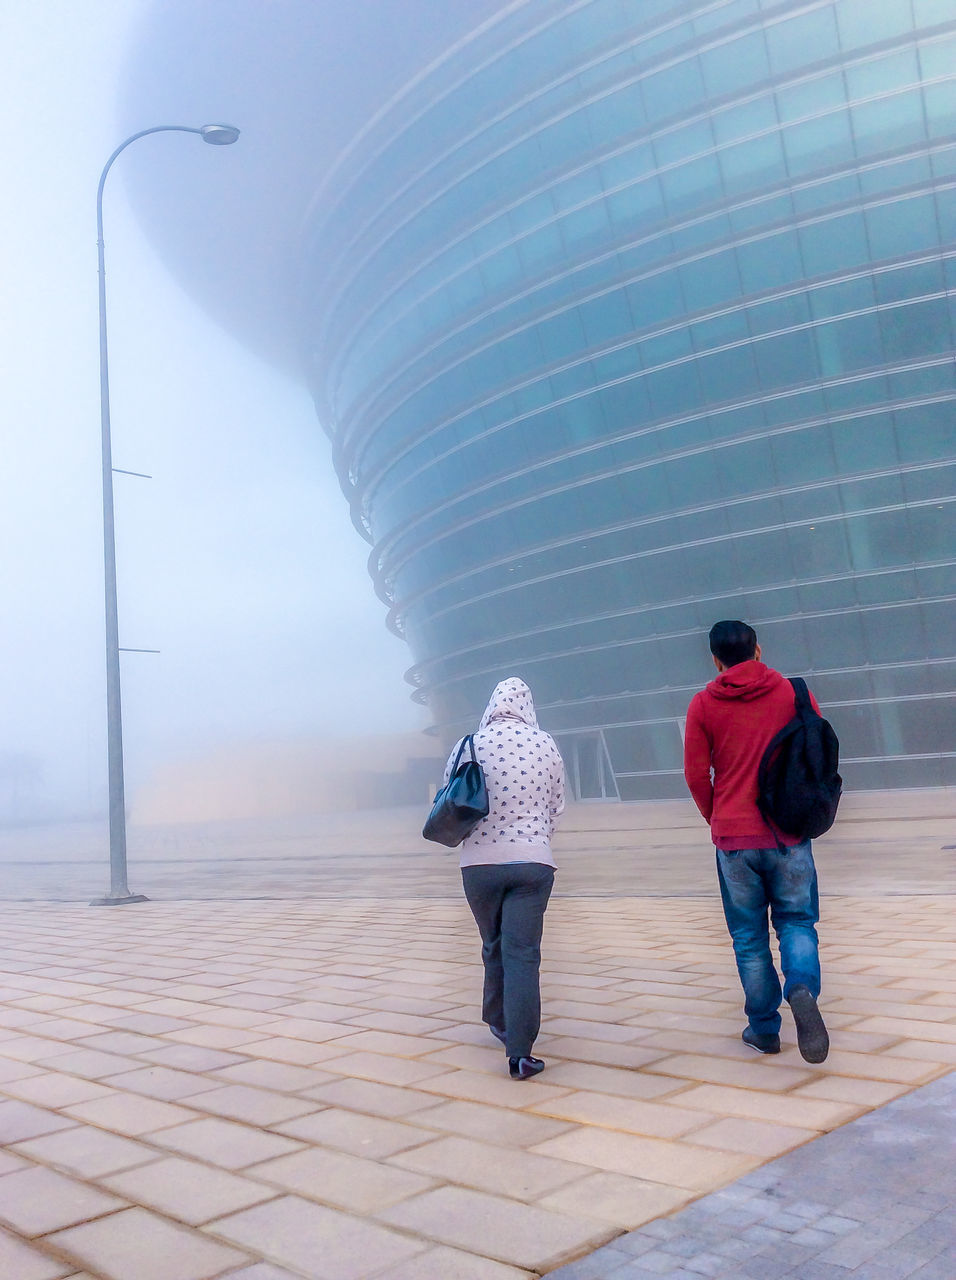 Full Length Rear View Of Man And Woman Walking Against Building During Foggy Weather